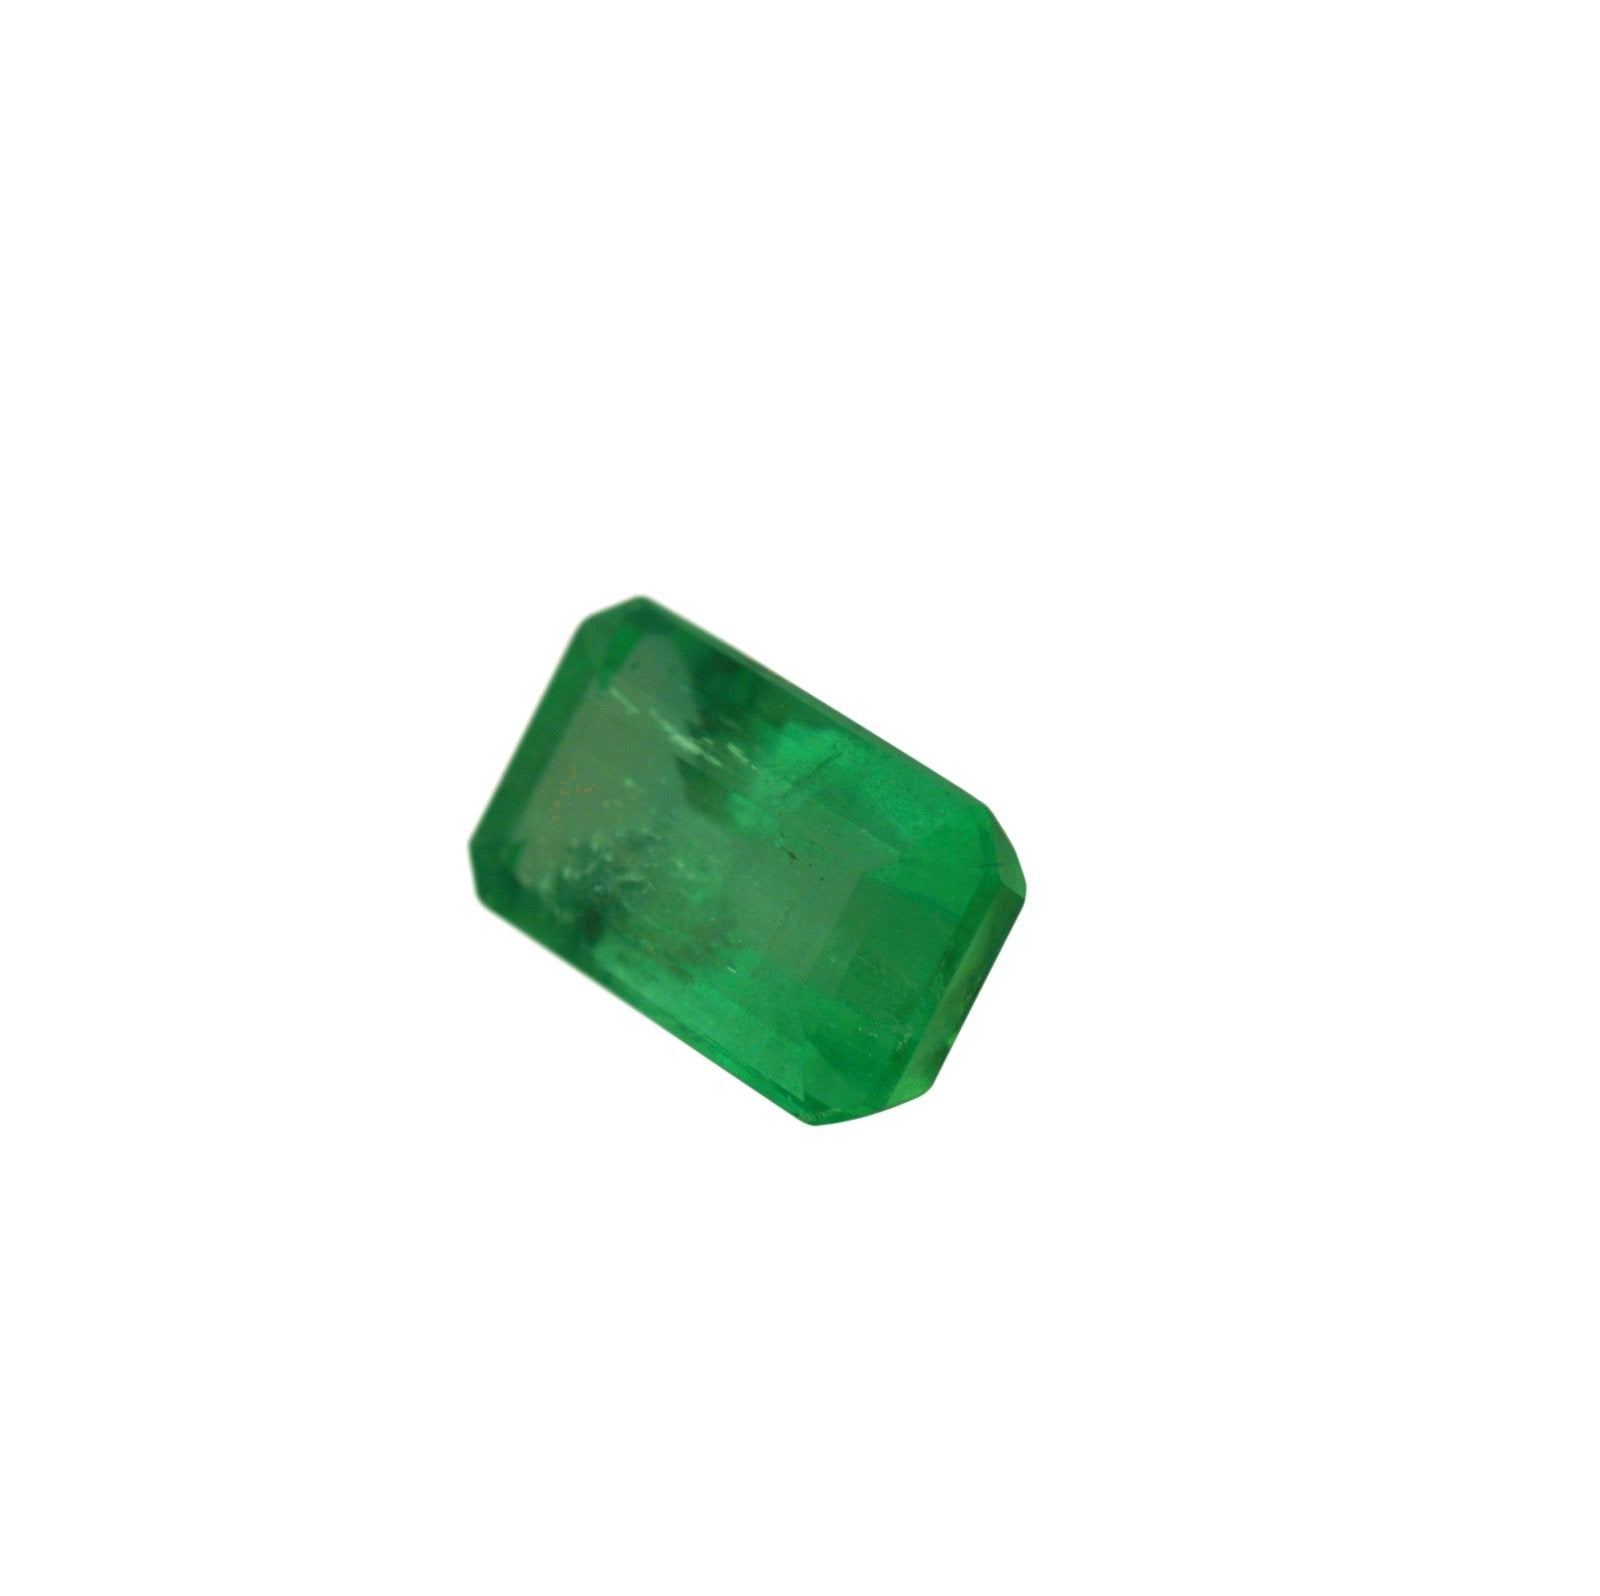 emerald genuine x fullxfull columbian il gemstone product cut natural colombian loose